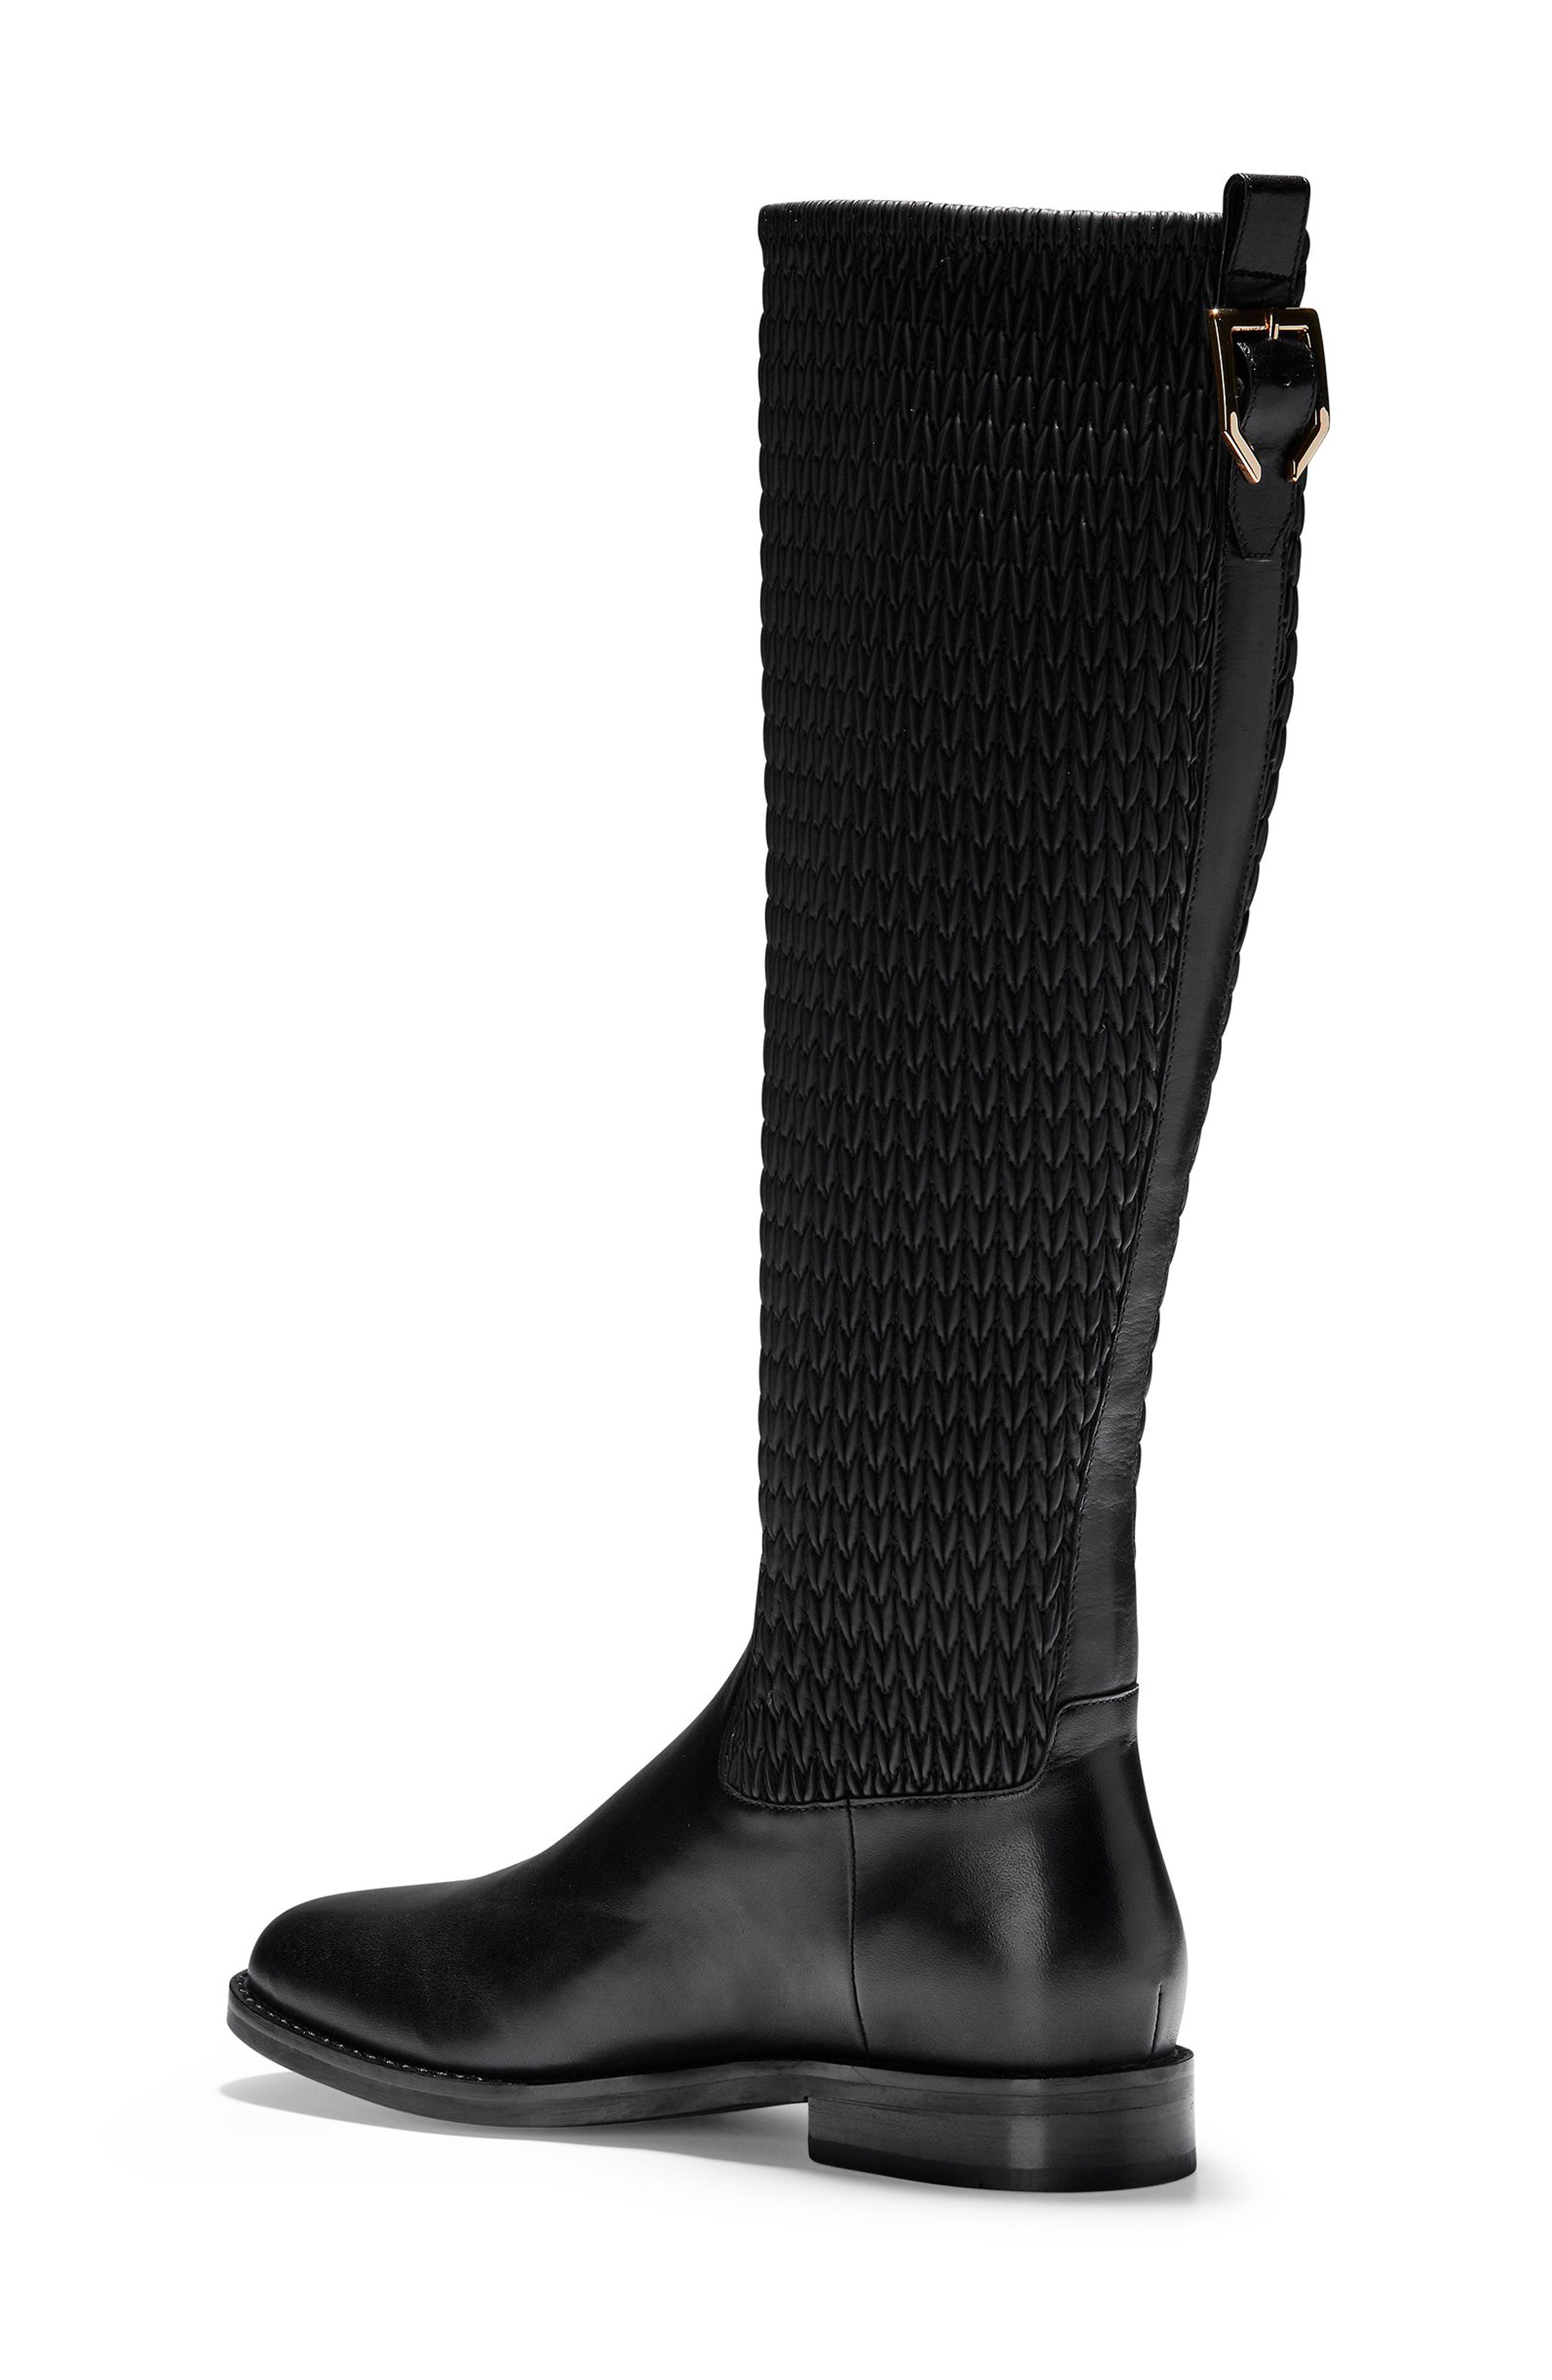 COLE HAAN, Lexi Grand Knee High Stretch Boot, Alternate thumbnail 2, color, BLACK LEATHER